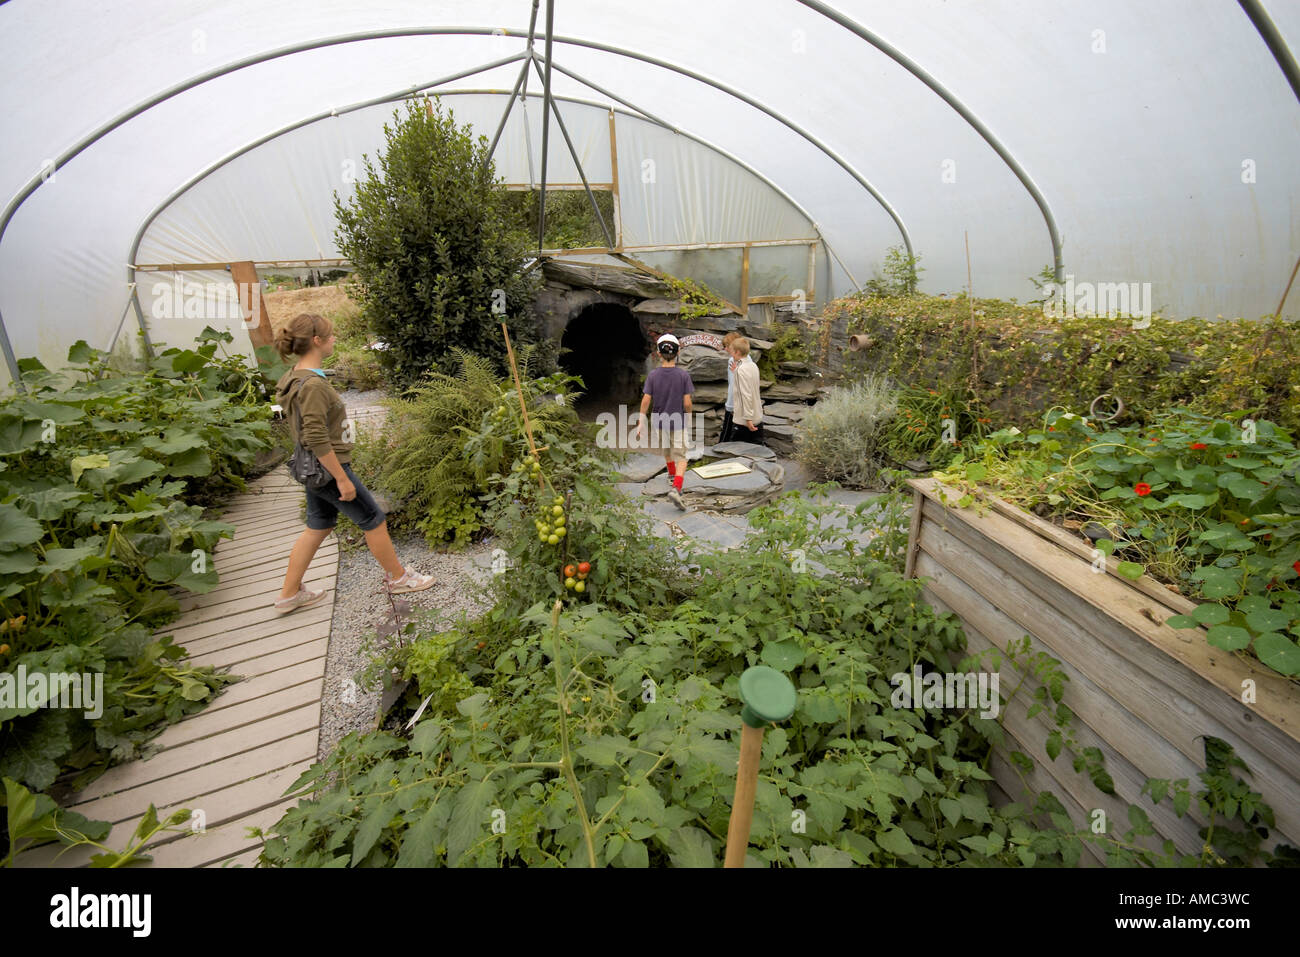 plants growing in a large polytunnel at the Centre for Alternative Technology Machynlleth Wales - Stock Image